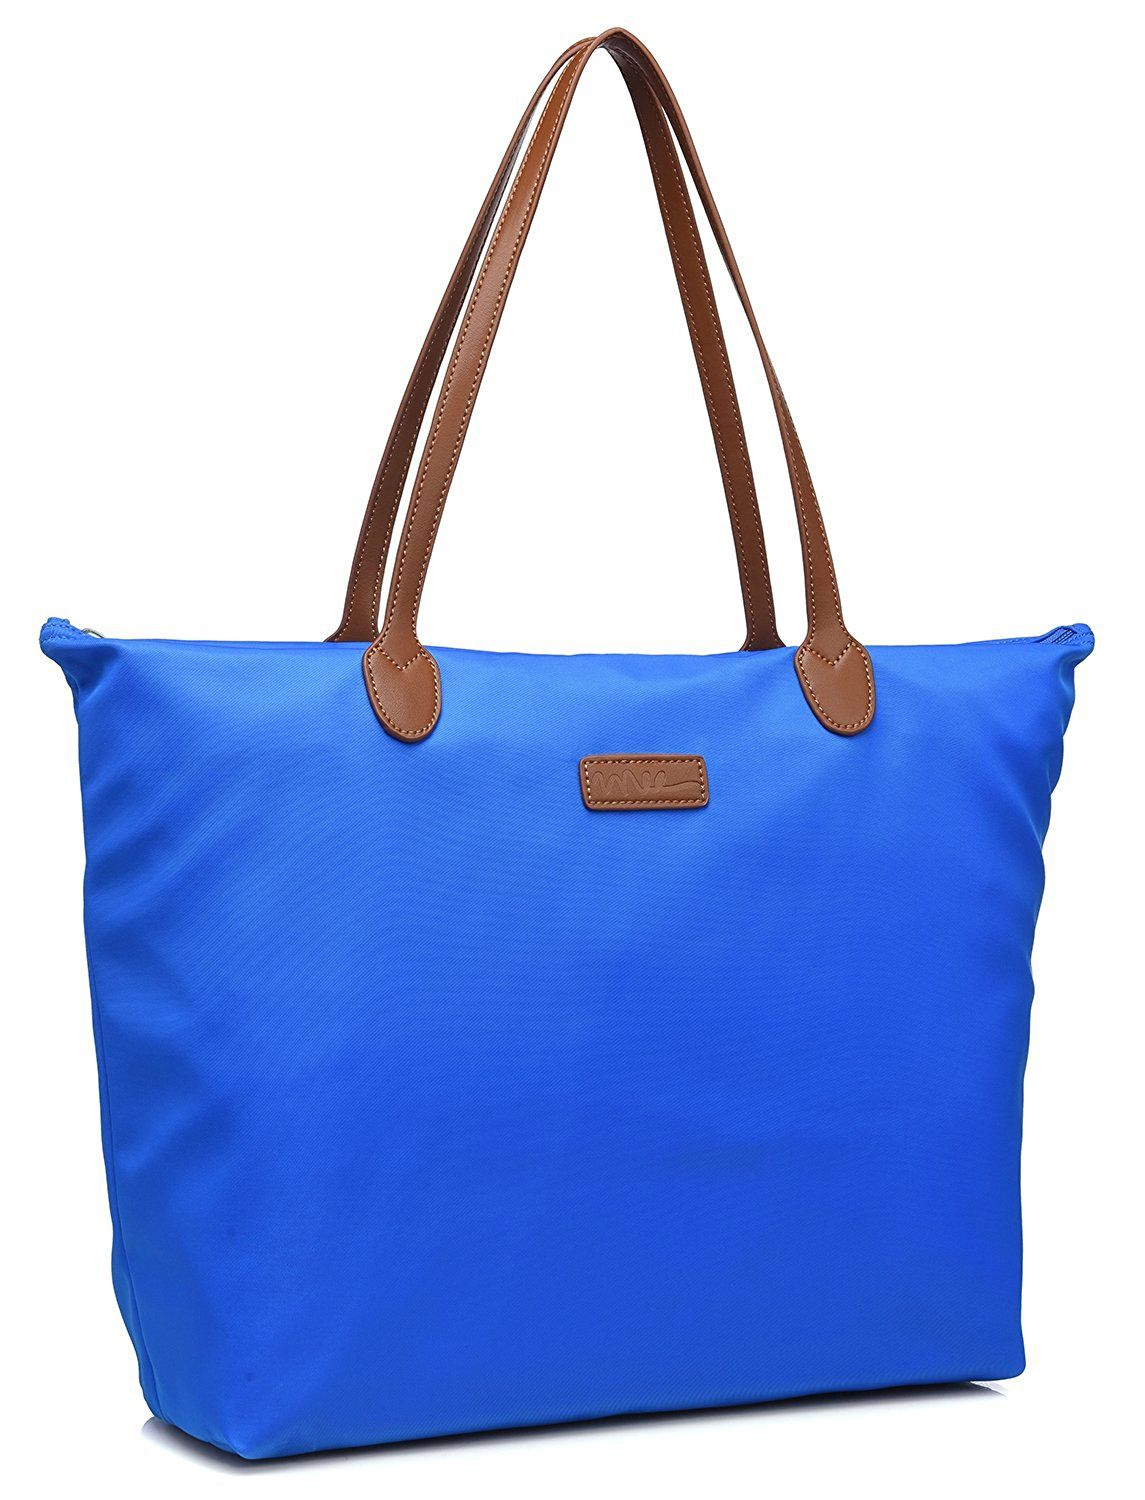 NNEE Water Resistant Light Weight Nylon Tote Bag Handbag